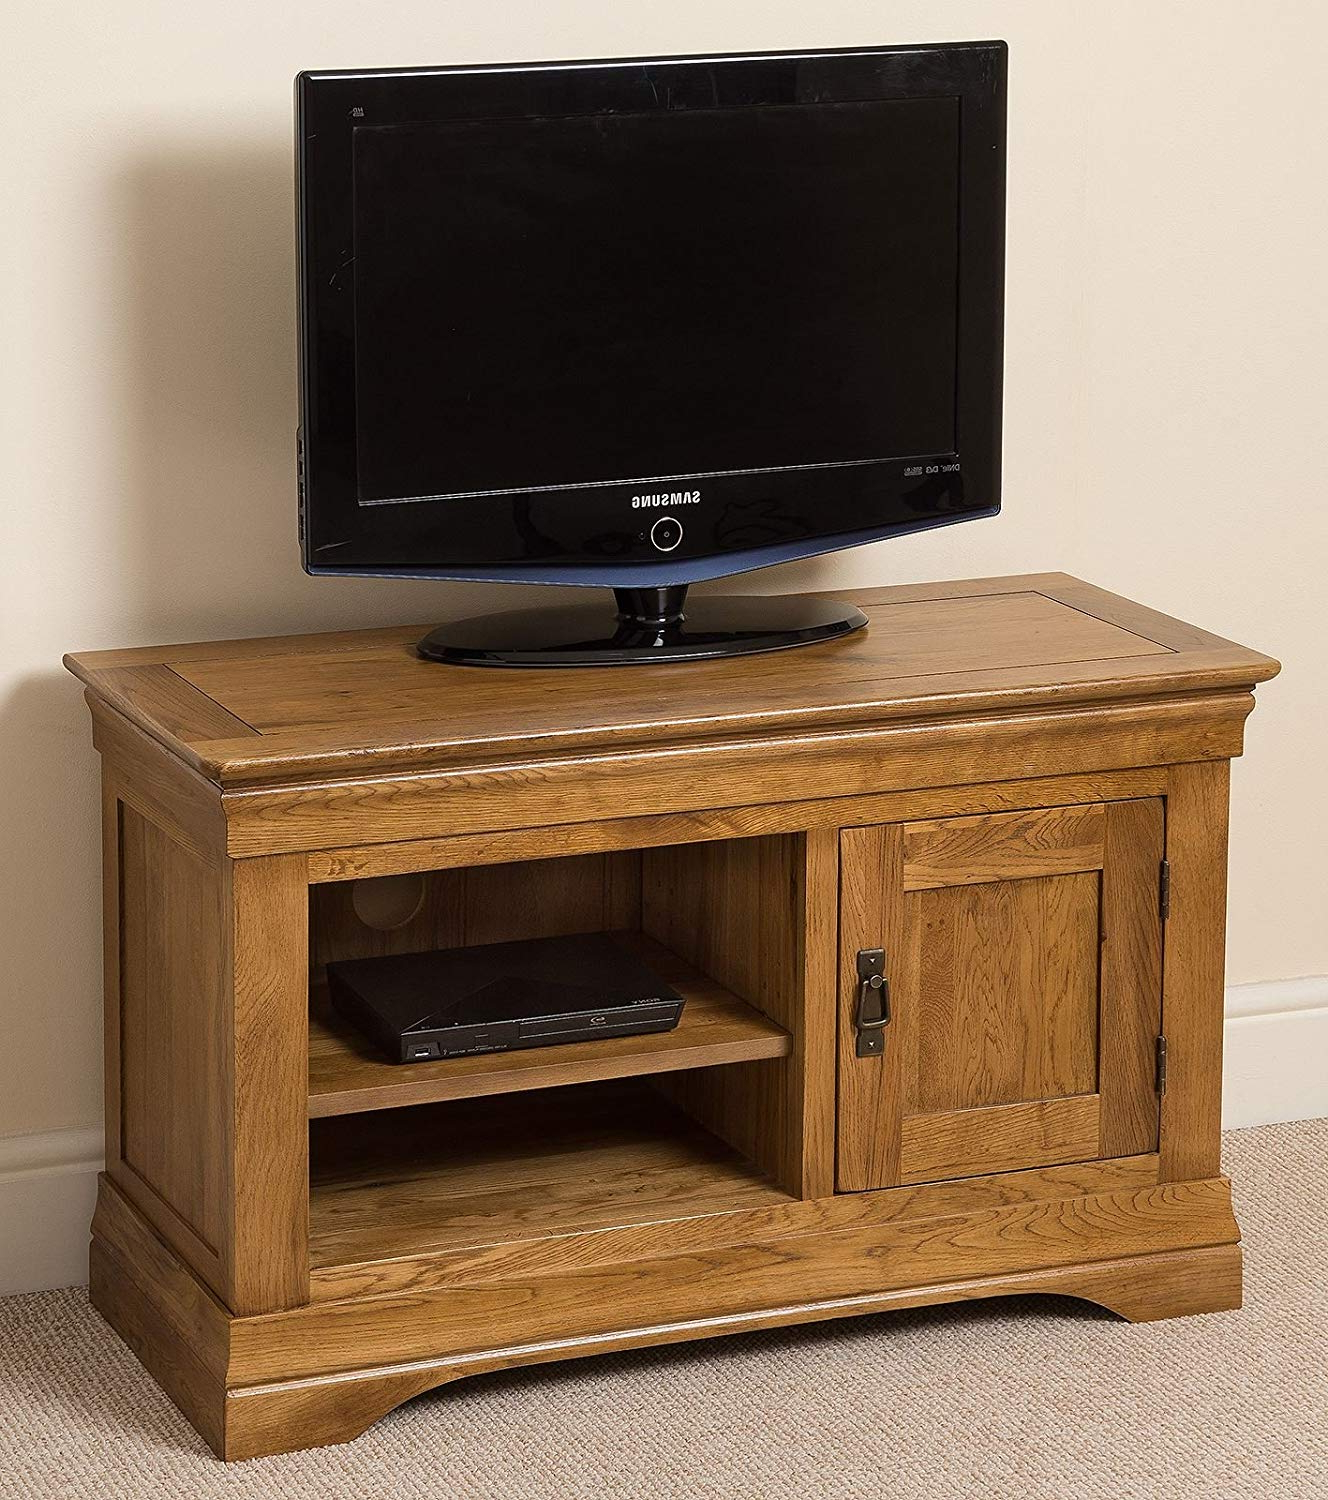 Fashionable Low Oak Tv Stands Intended For Oak Furniture King French Rustic Solid Oak Small Tv Unit Stand/dvd (View 3 of 20)